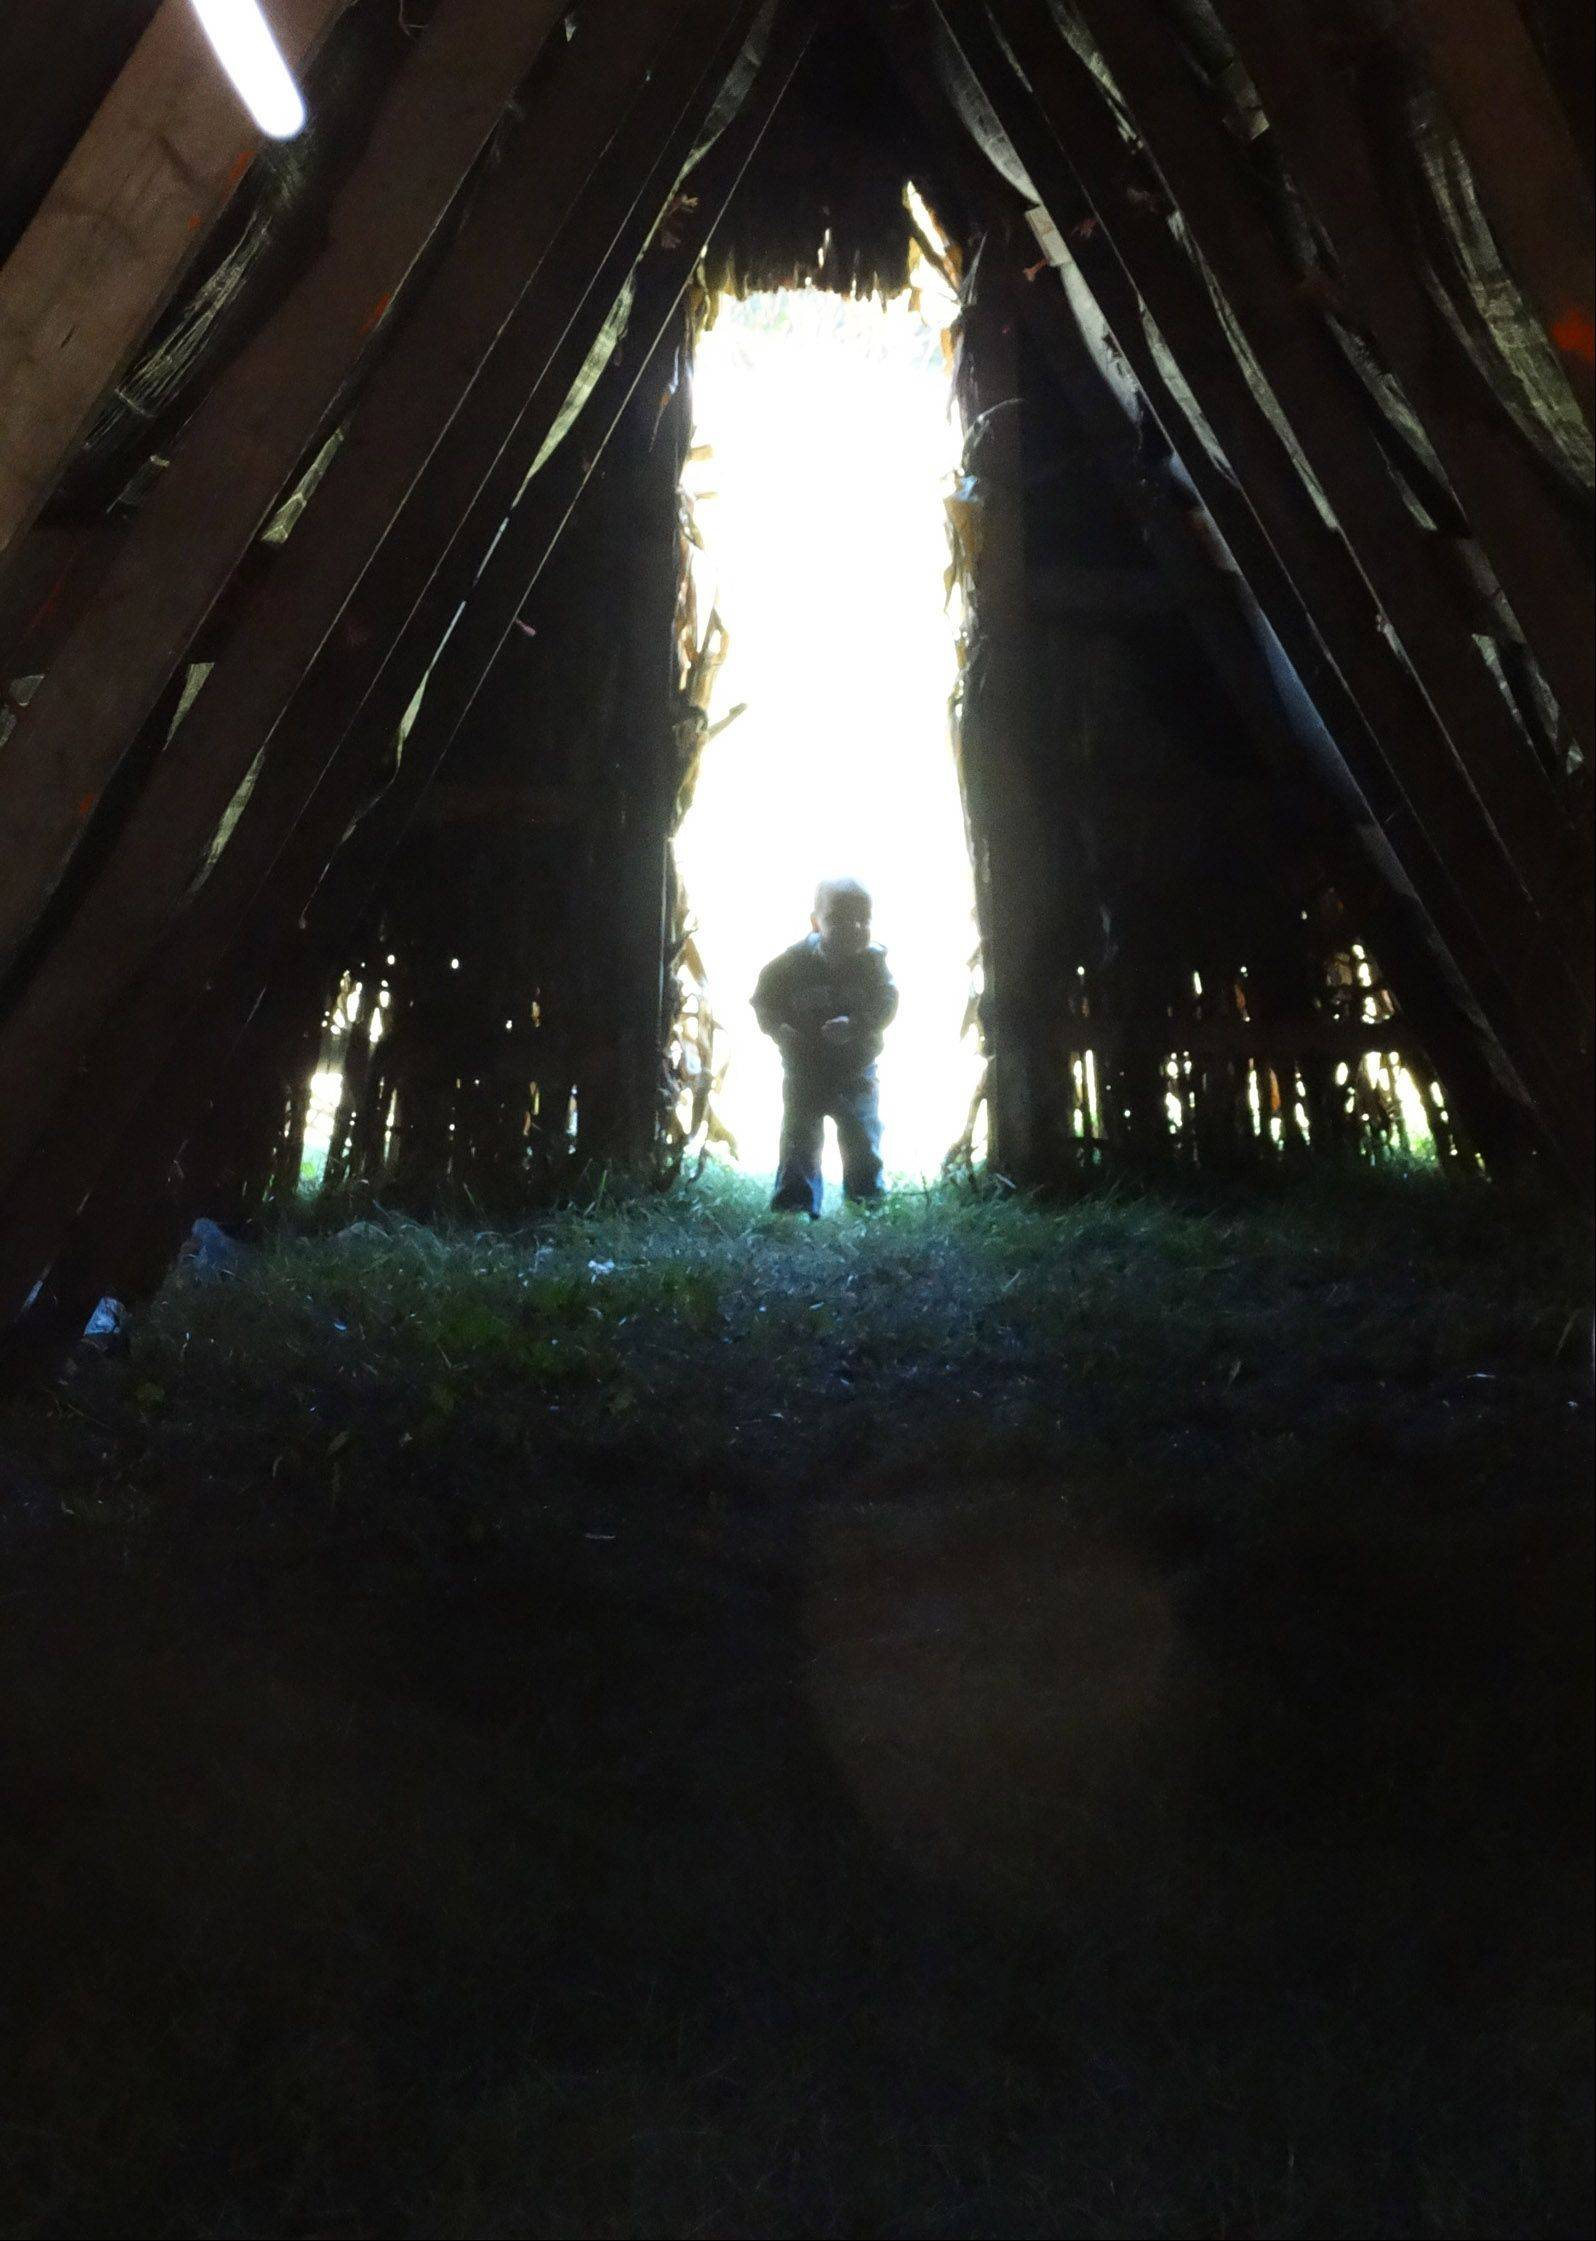 After walking through the corn teepee, Zachary Jackson takes a peek back inside to look for his mommy on Friday, September 13th, at Norton Farm in St. Charles.